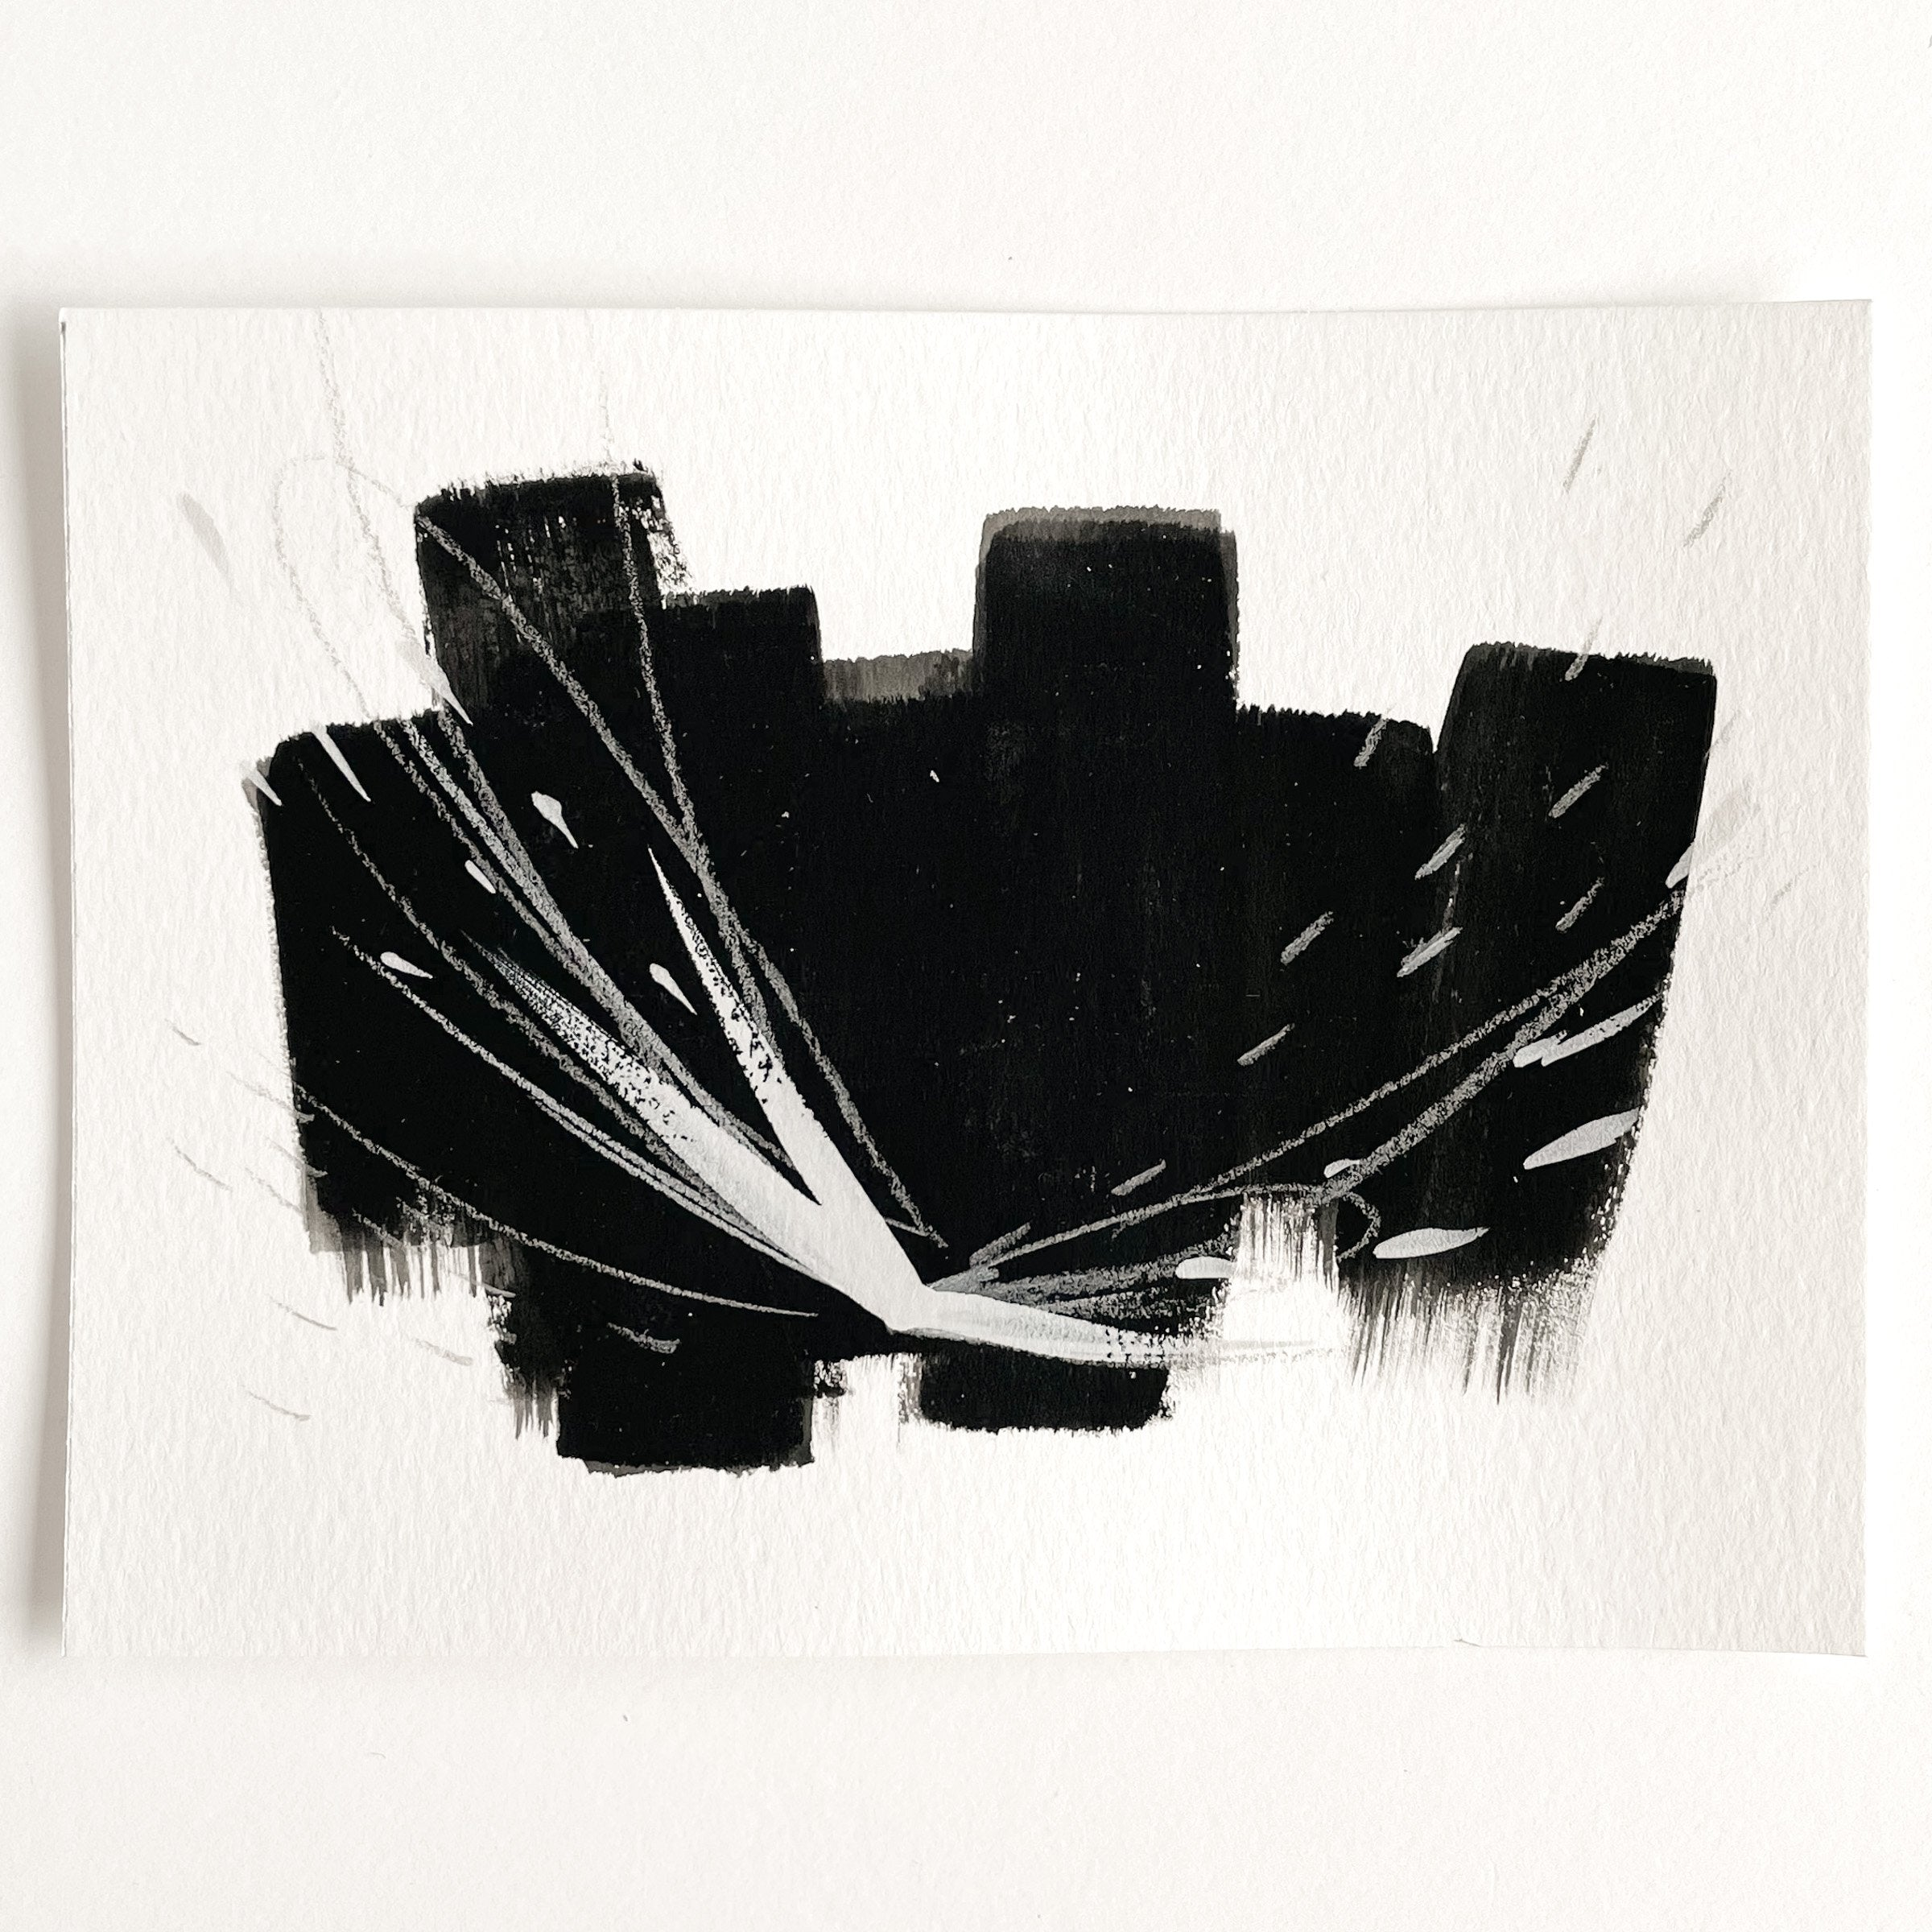 Stay 15 - Neutral, Black and white abstract painting on paper by artist Kait DeWolff. Kaitcreative